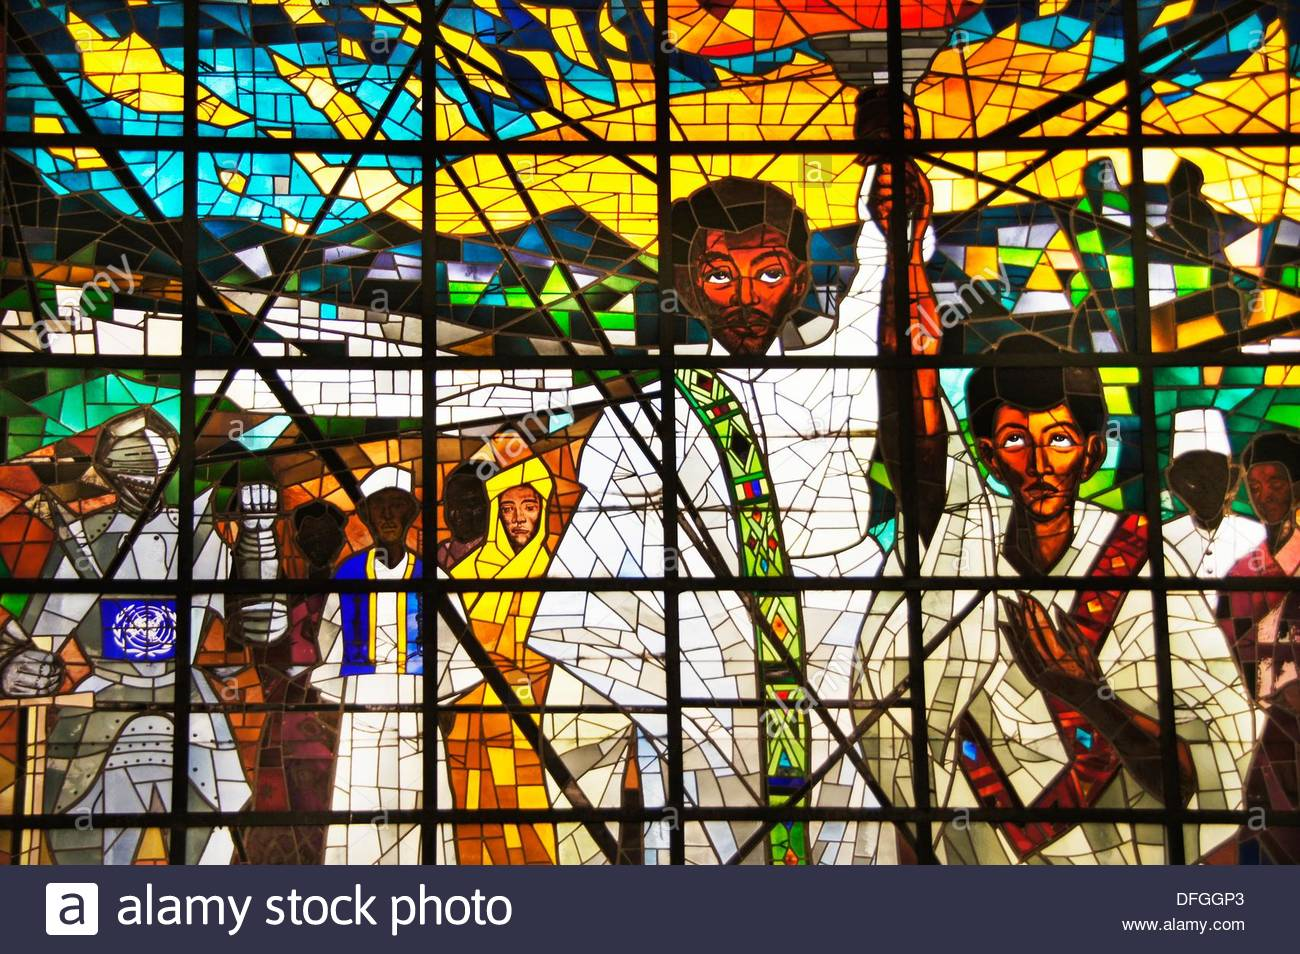 Africa Hall Addis Ababa, Africa Hall at Addis Ababa: detail of the stained glass by Afewerk ...